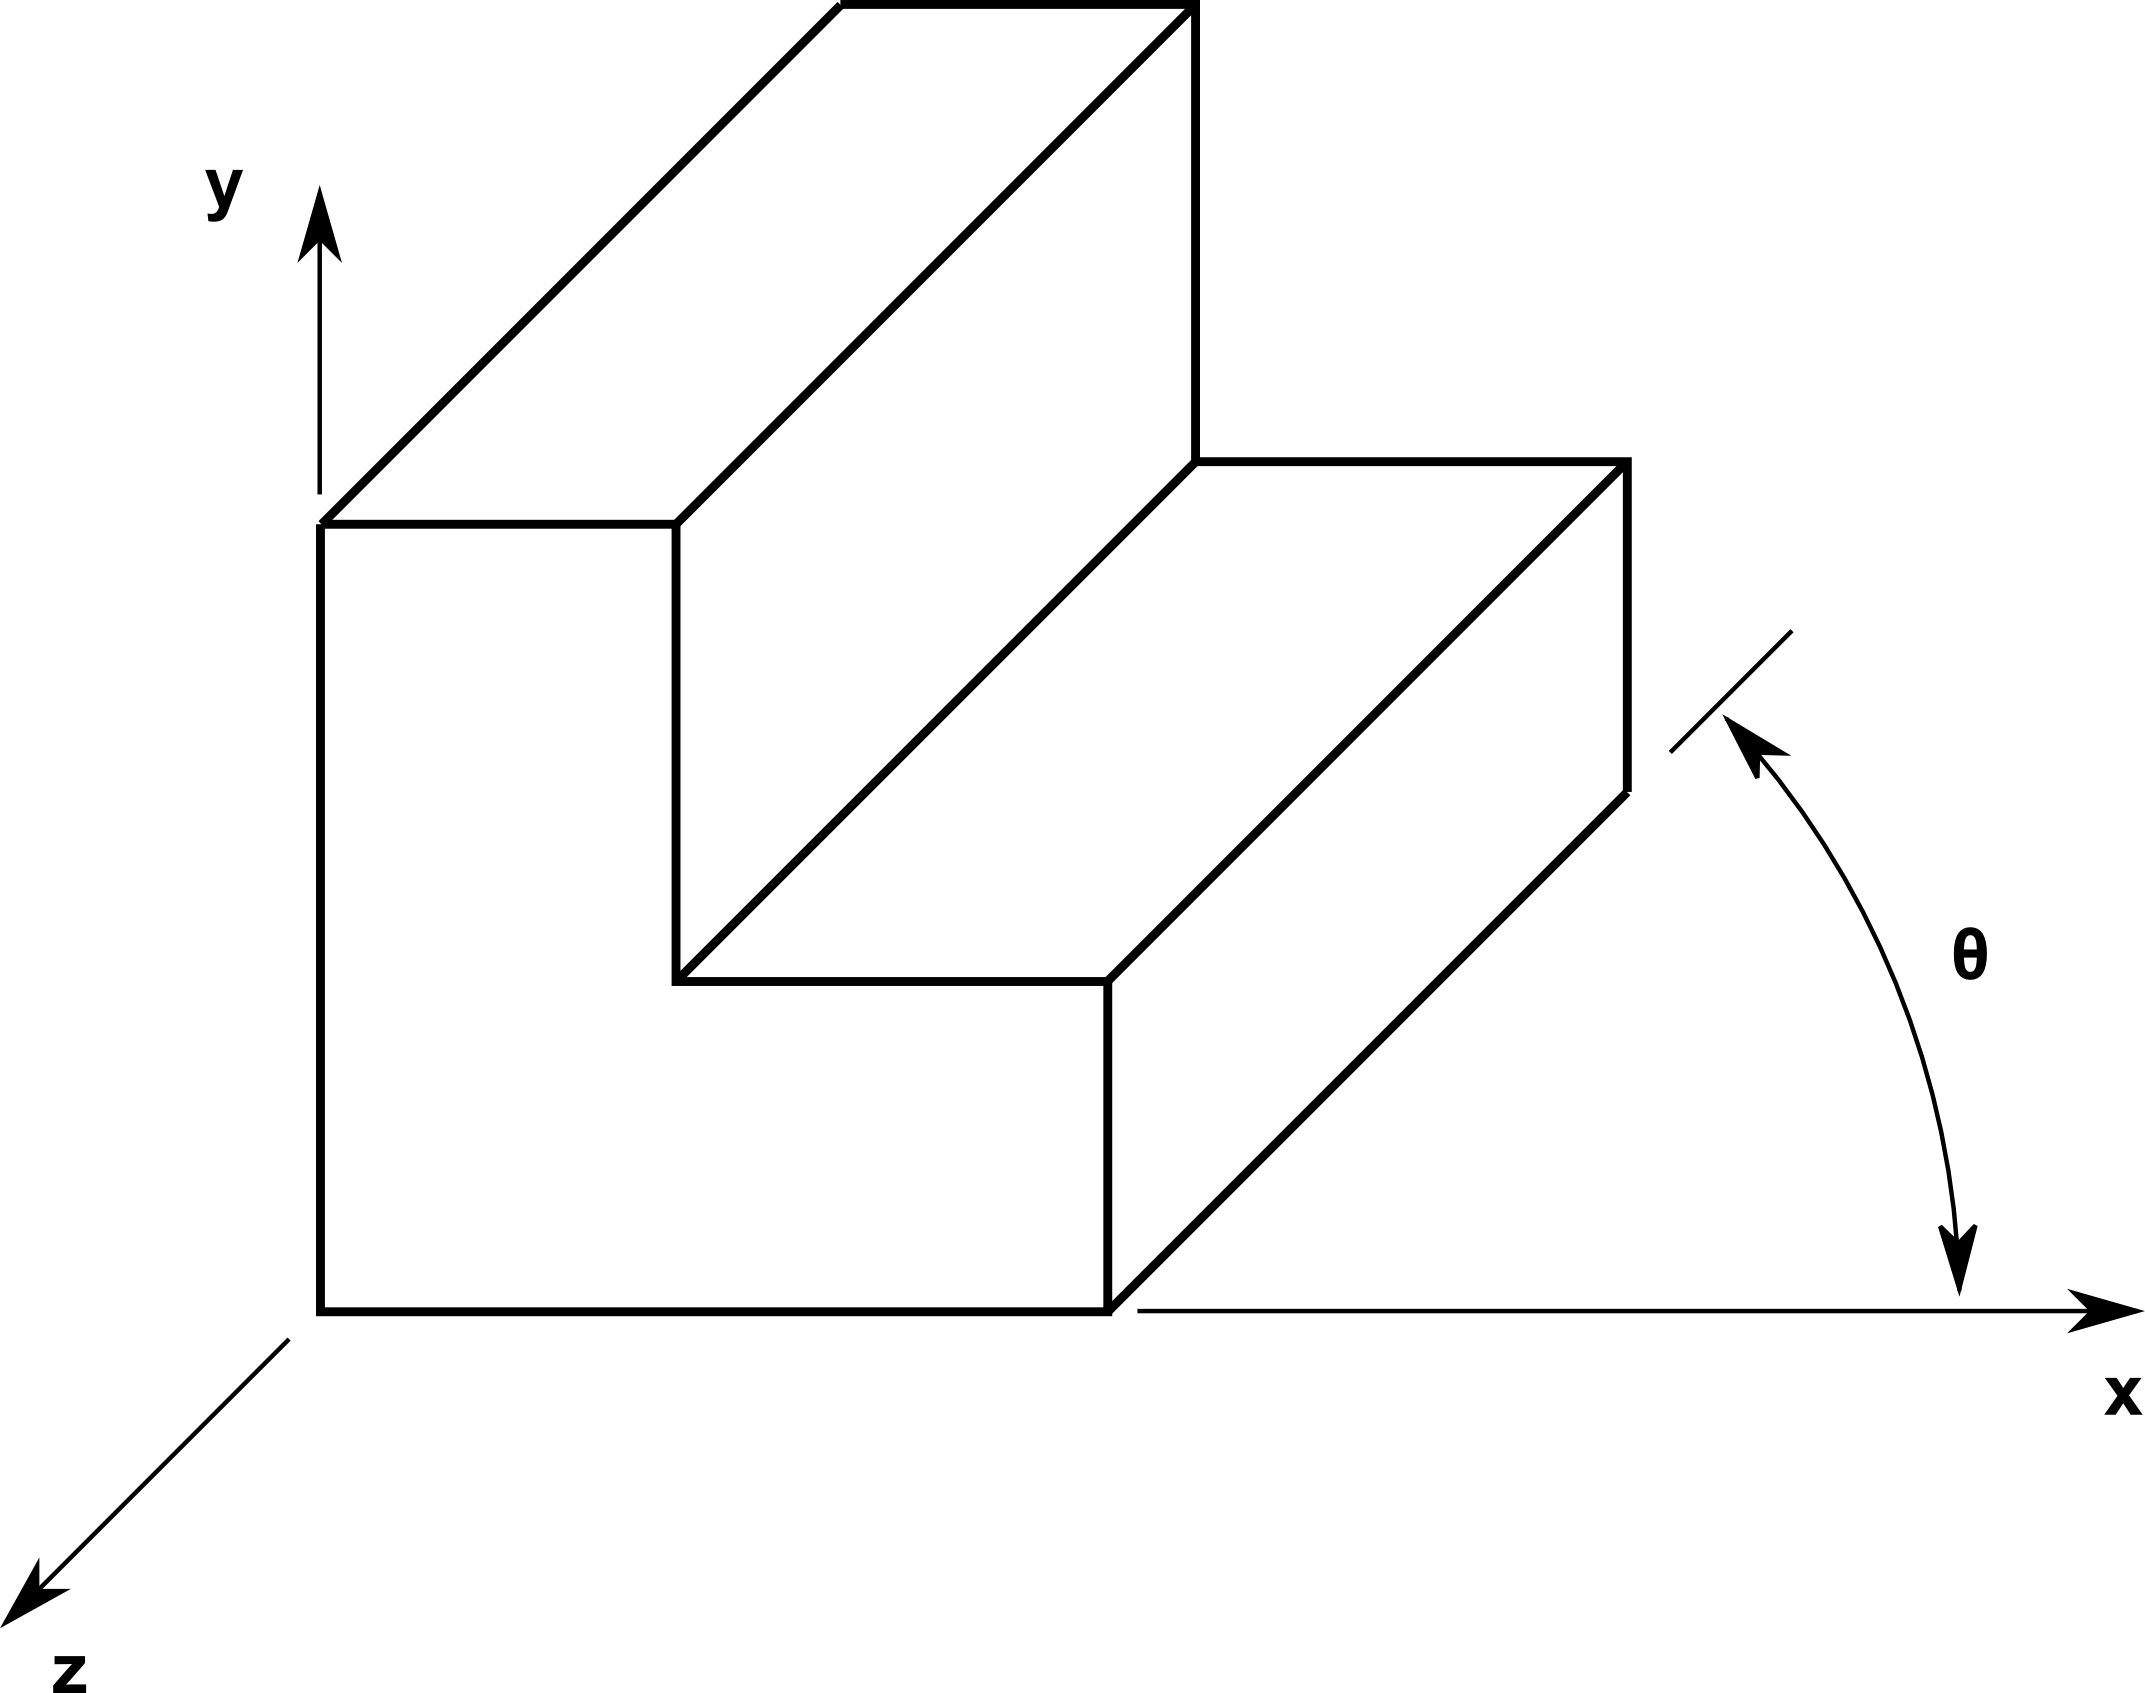 how to draw a sankey diagram scale 4 bit adder subtractor circuit eng 004 lecture